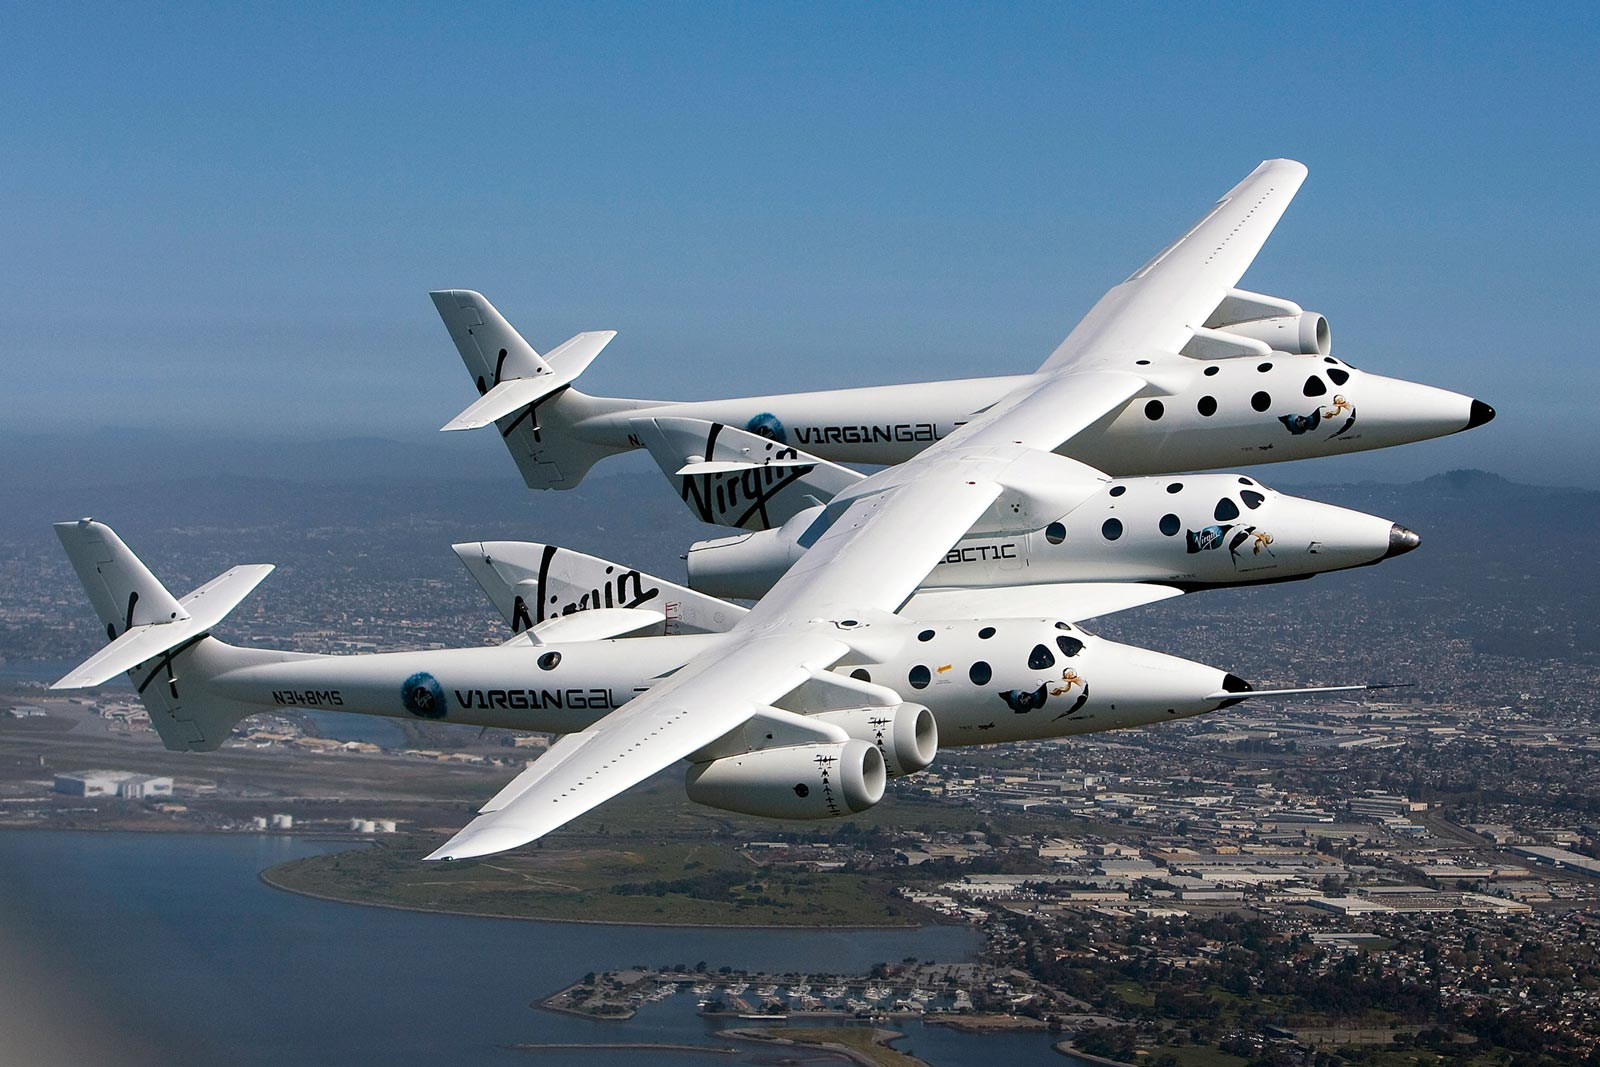 JUST IN: 1 Pilot Dead As Virgin Galactic's SpaceShipTwo ...